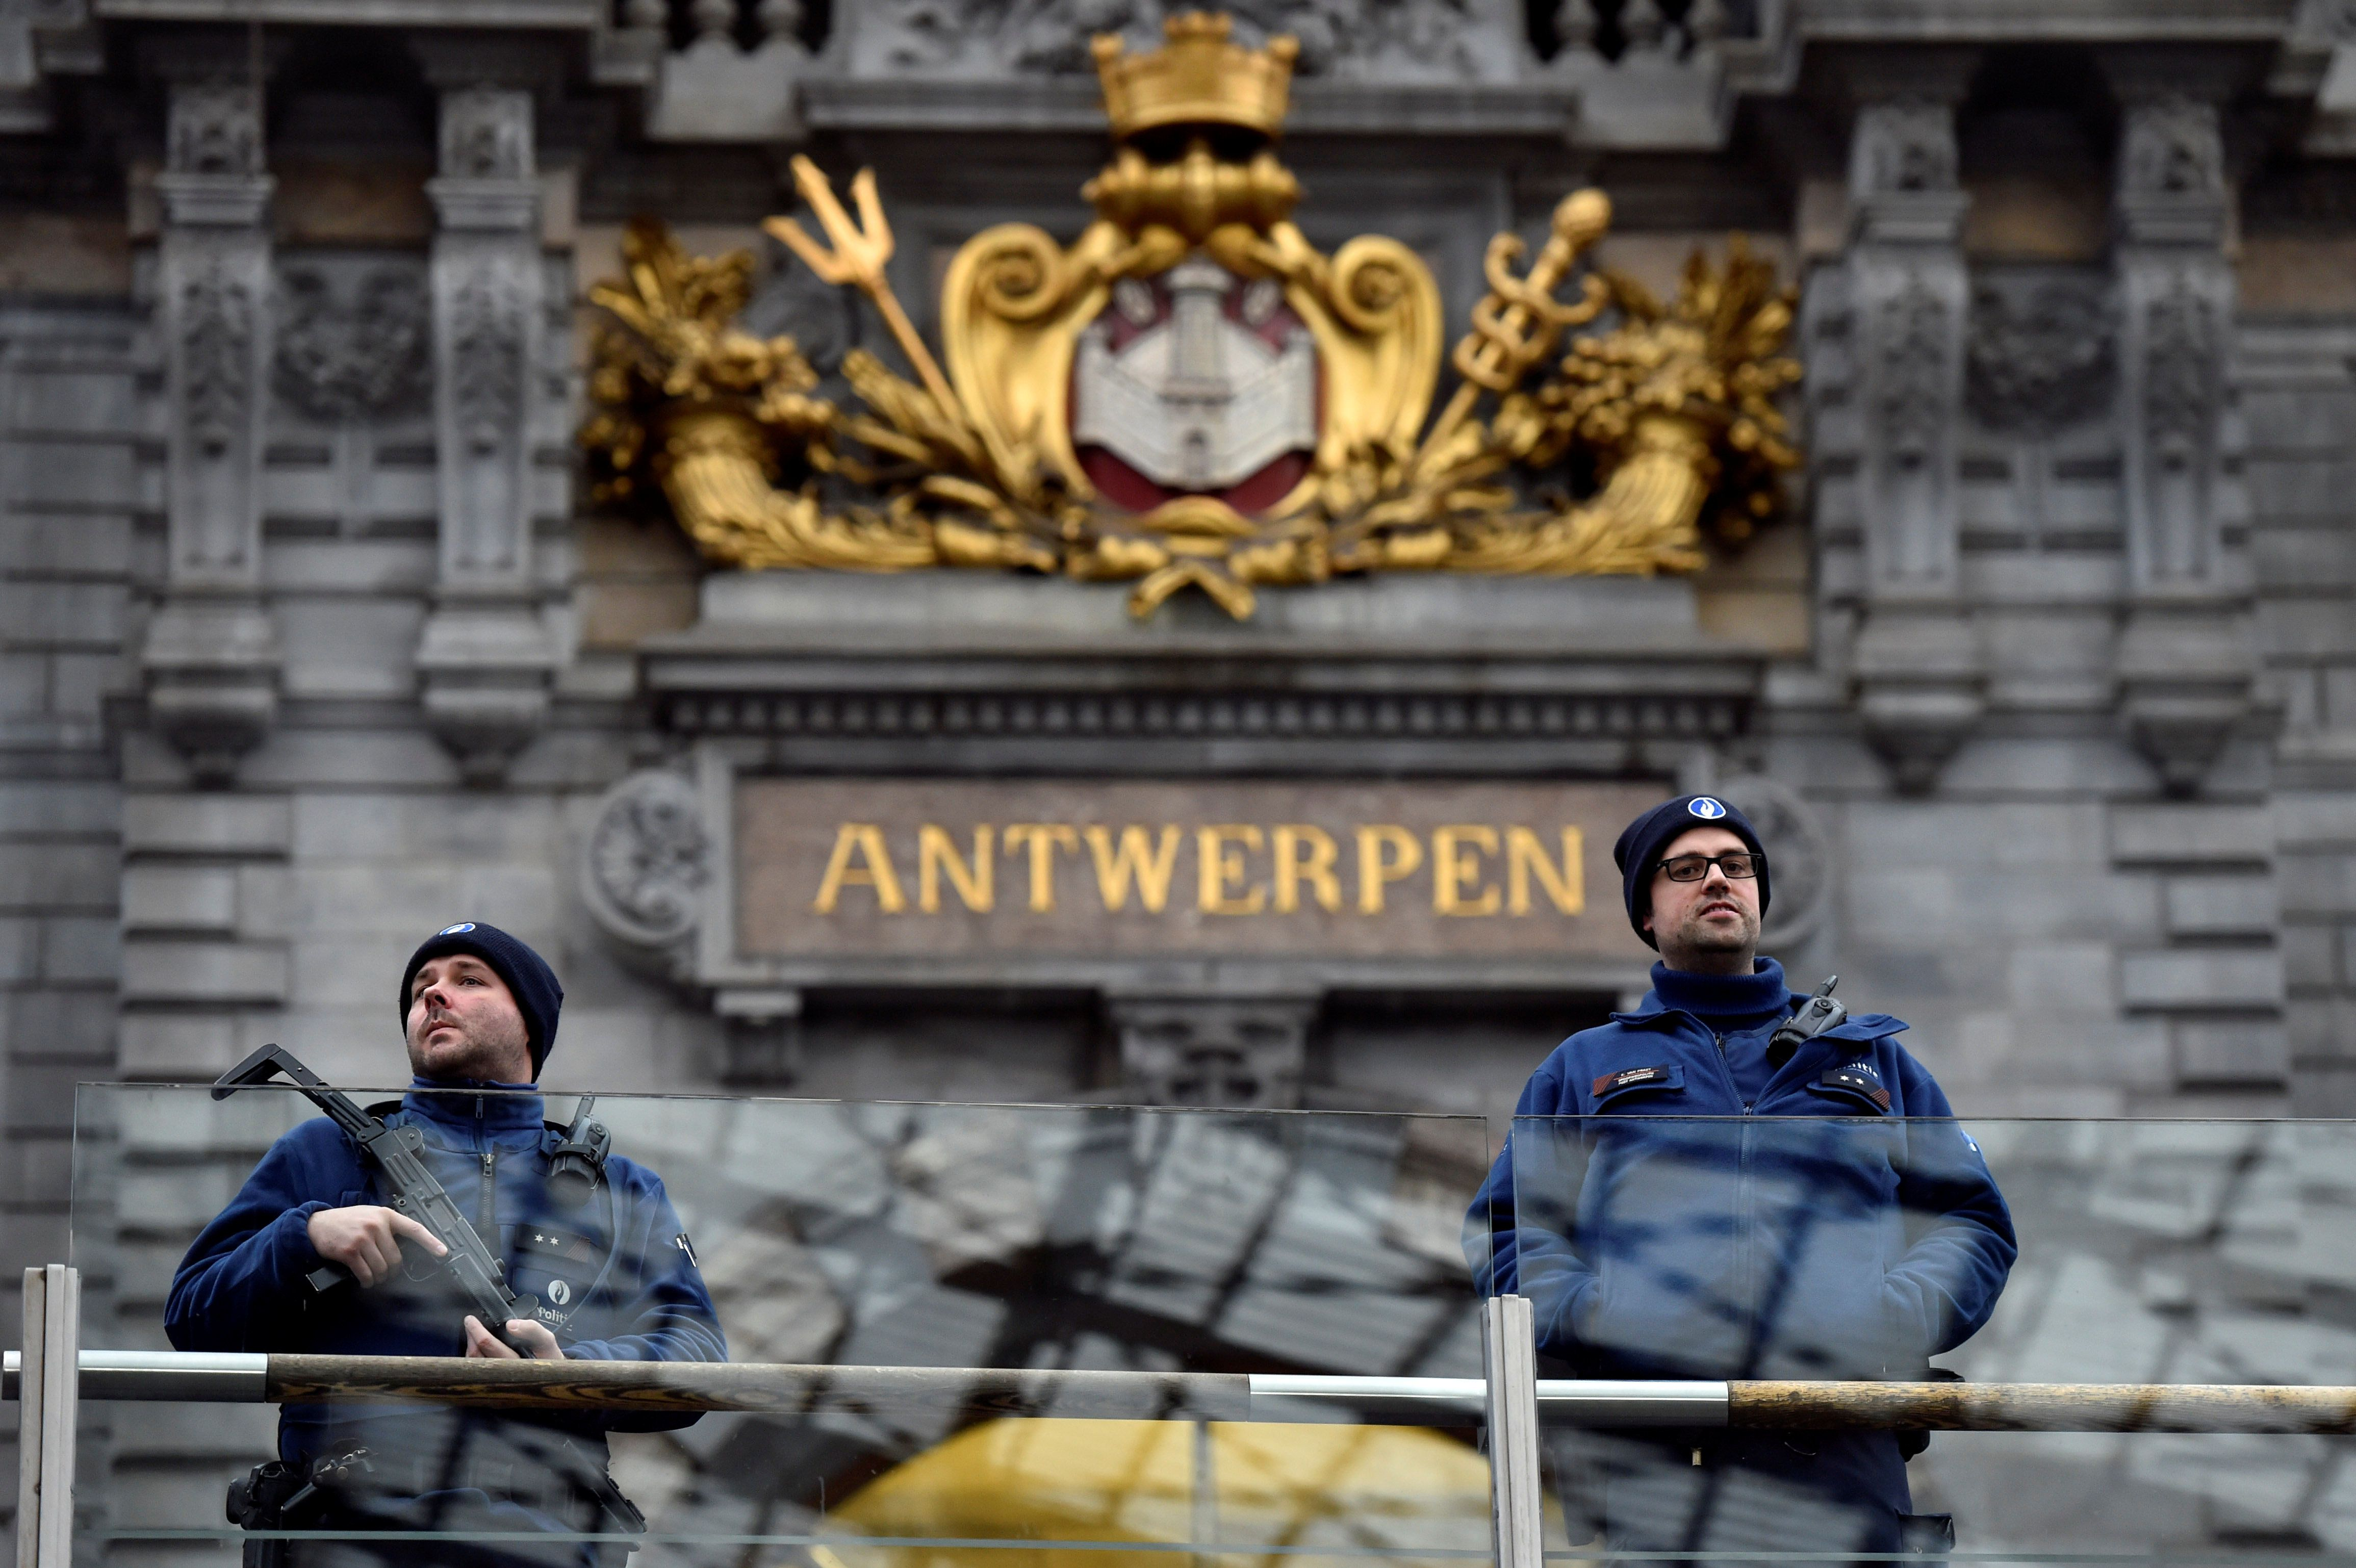 File photo of Belgium police officers patrolling Antwerp's central